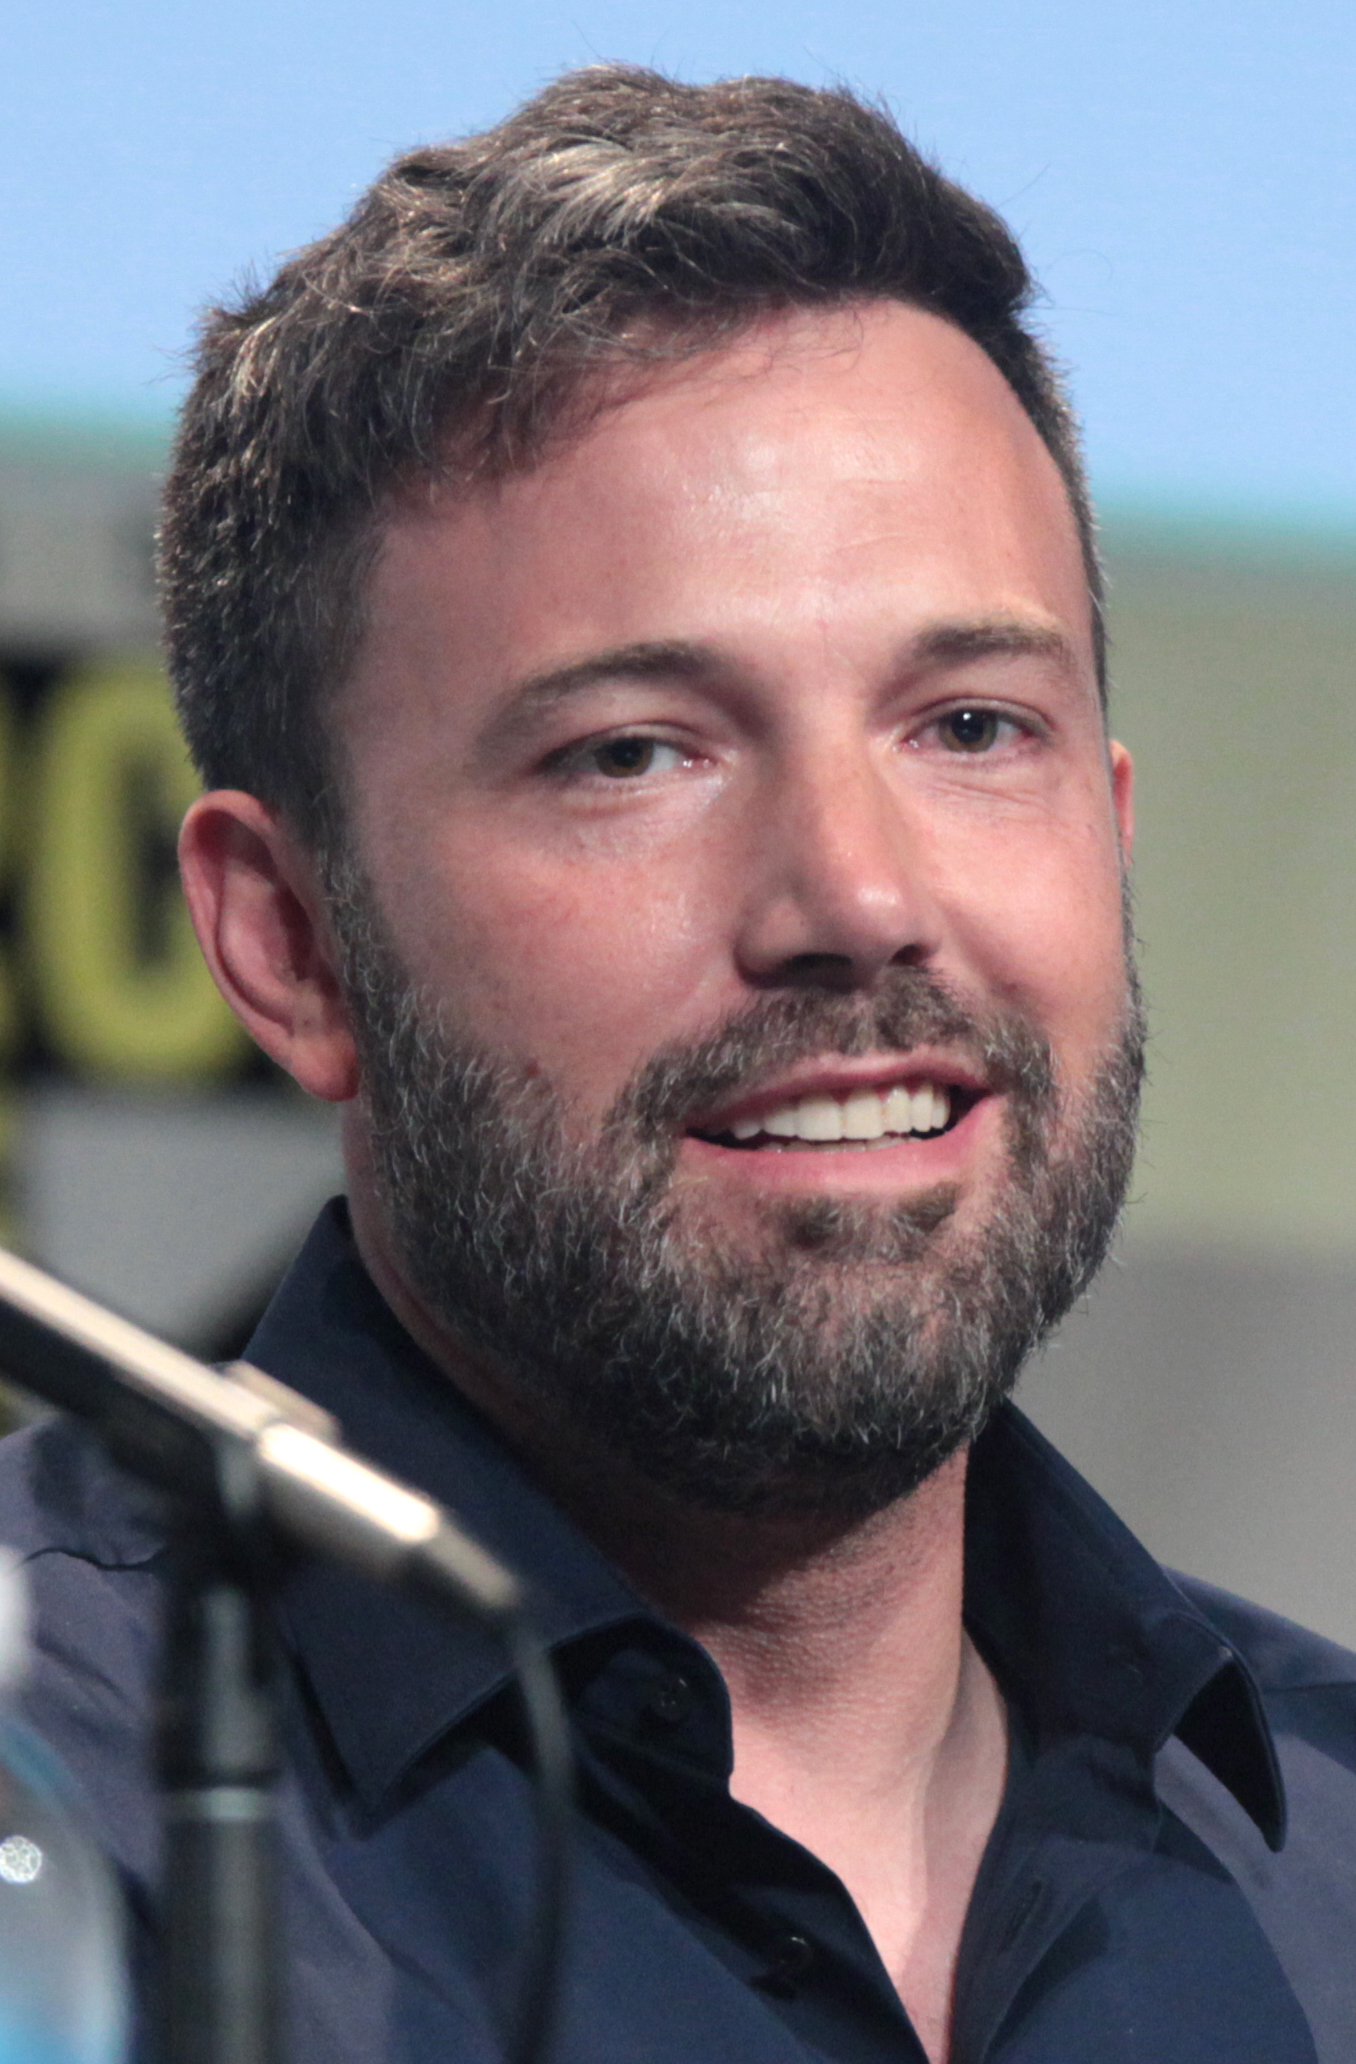 BEN AFFLECK | OPINION POLL | THE POLL MALL Ben Affleck